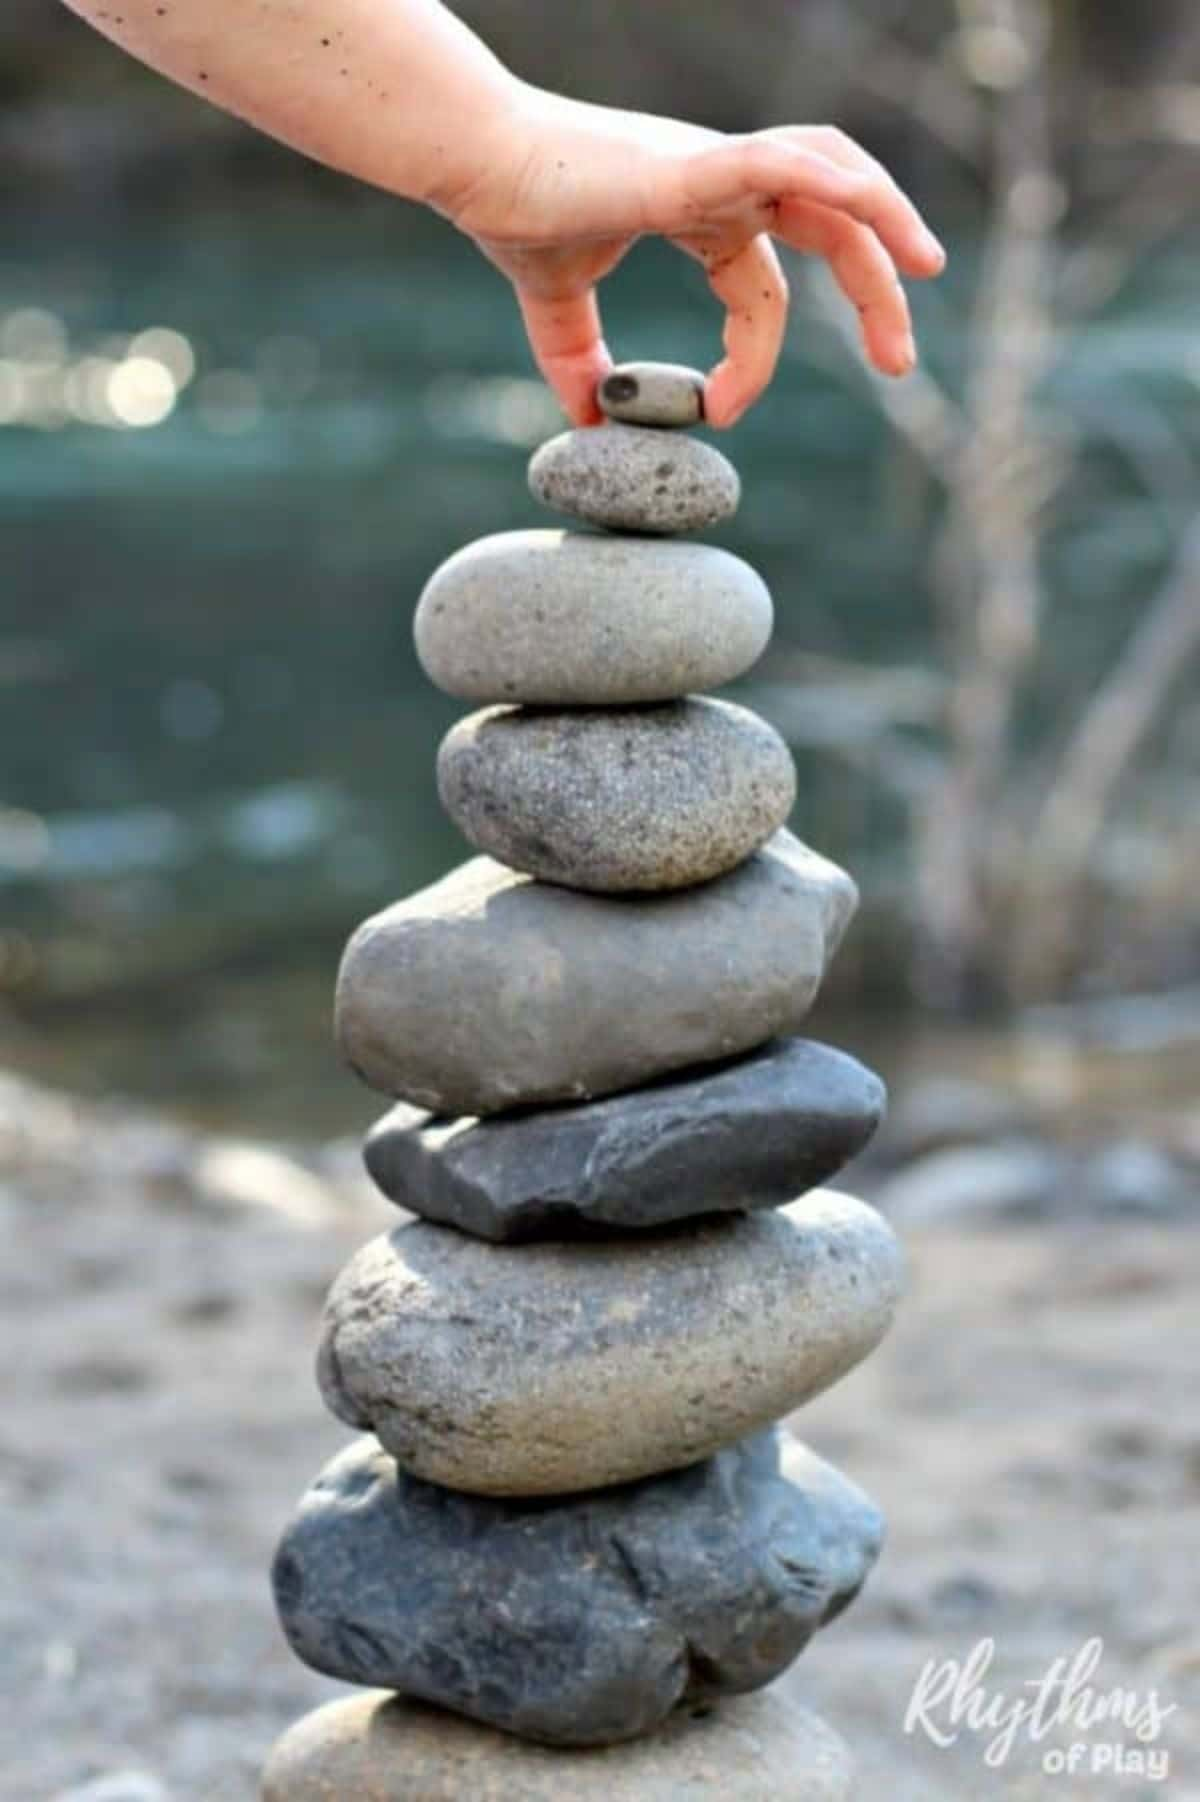 a hand places a small pebble on the top of a towering pile of stones.